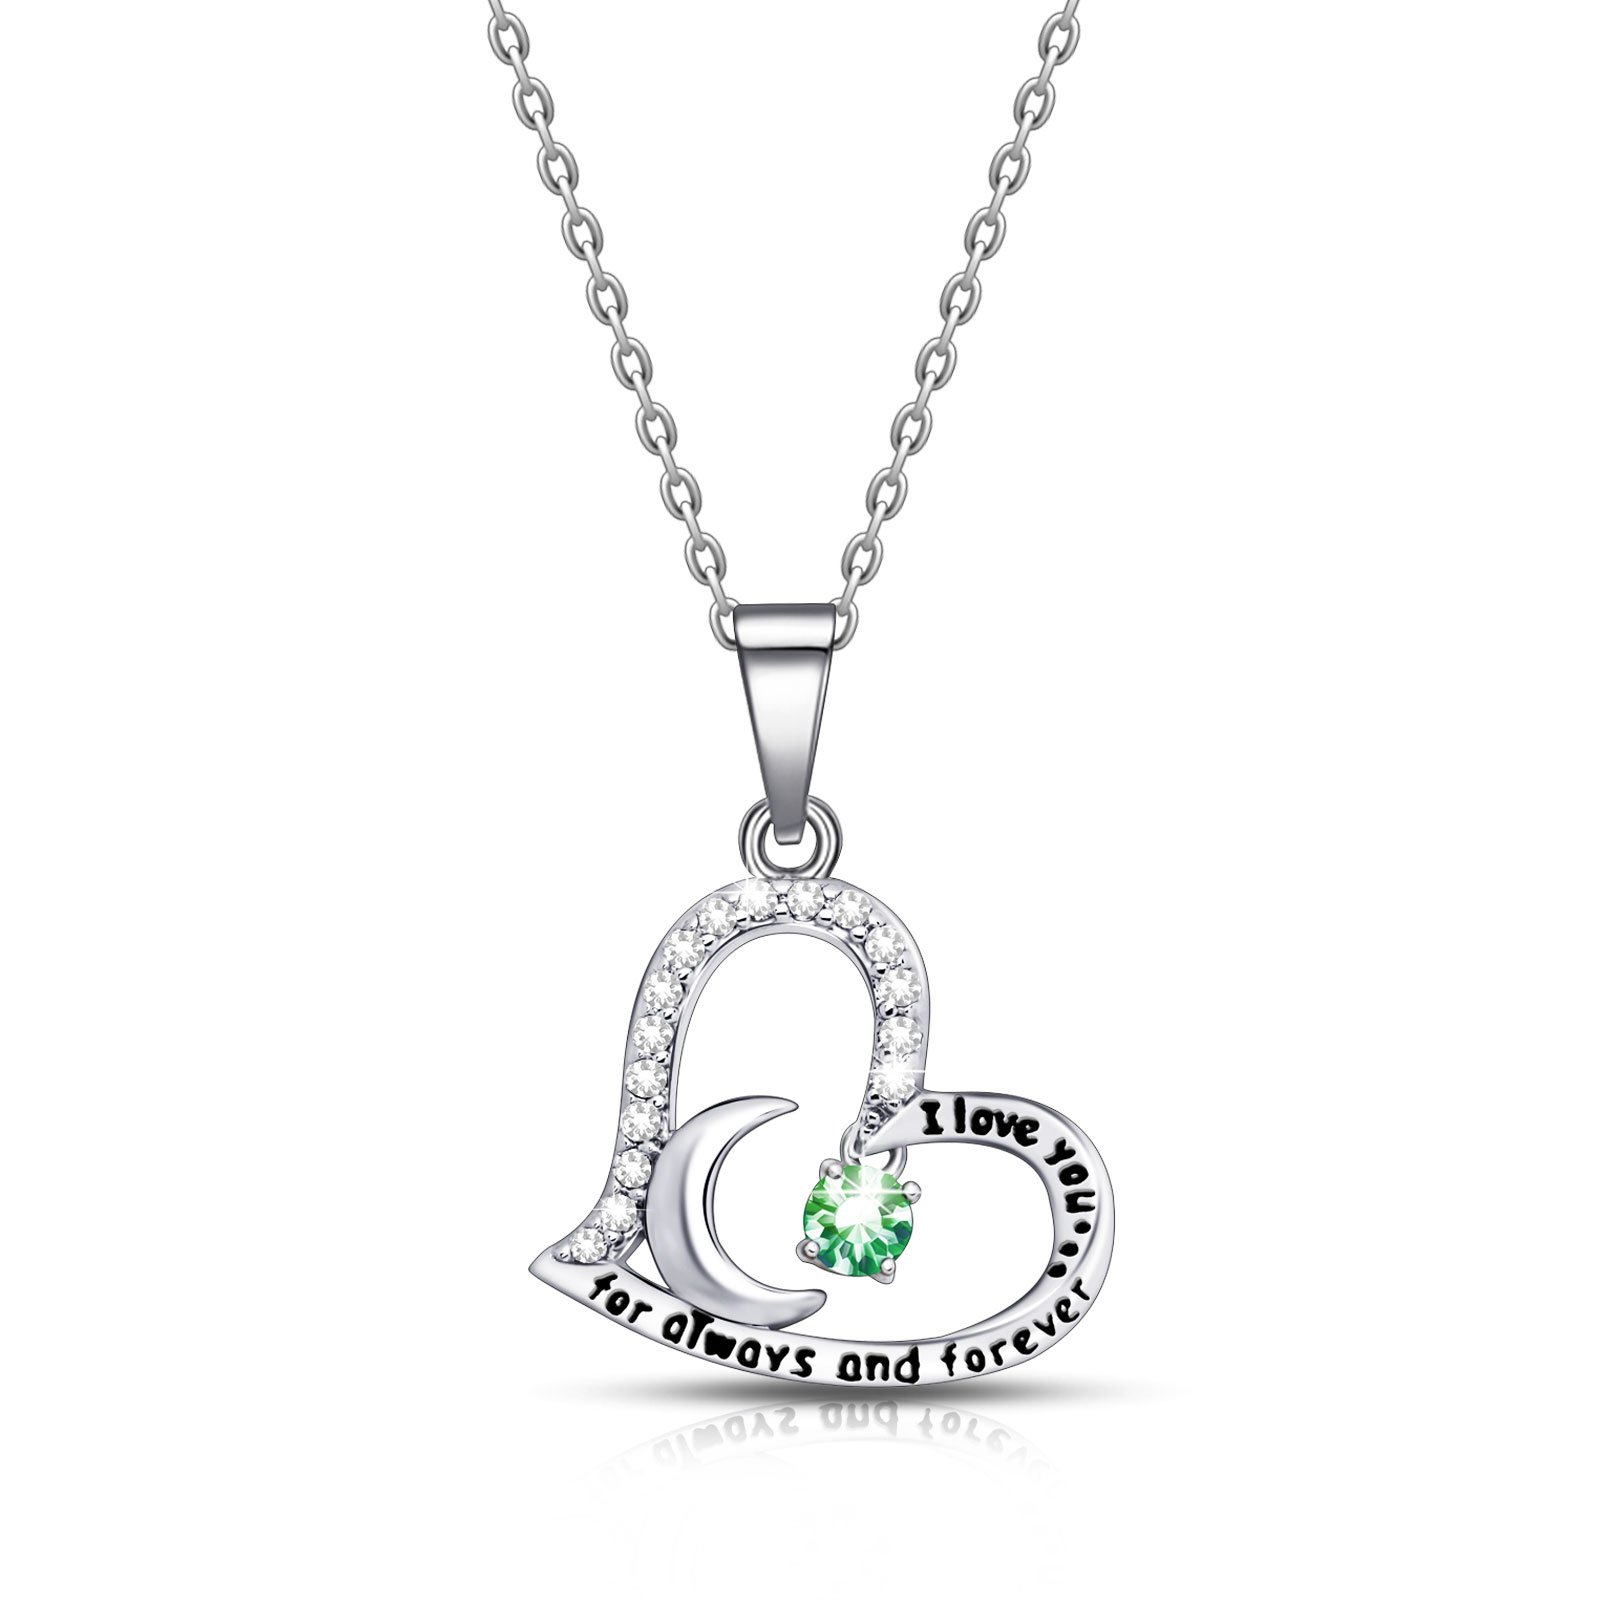 ivyAnan Jewellery Birthday Gift for Women I Love You Dancing Birthstone Peridot Necklace Jewelry Gift for Women Girls Daughter Wife (August)